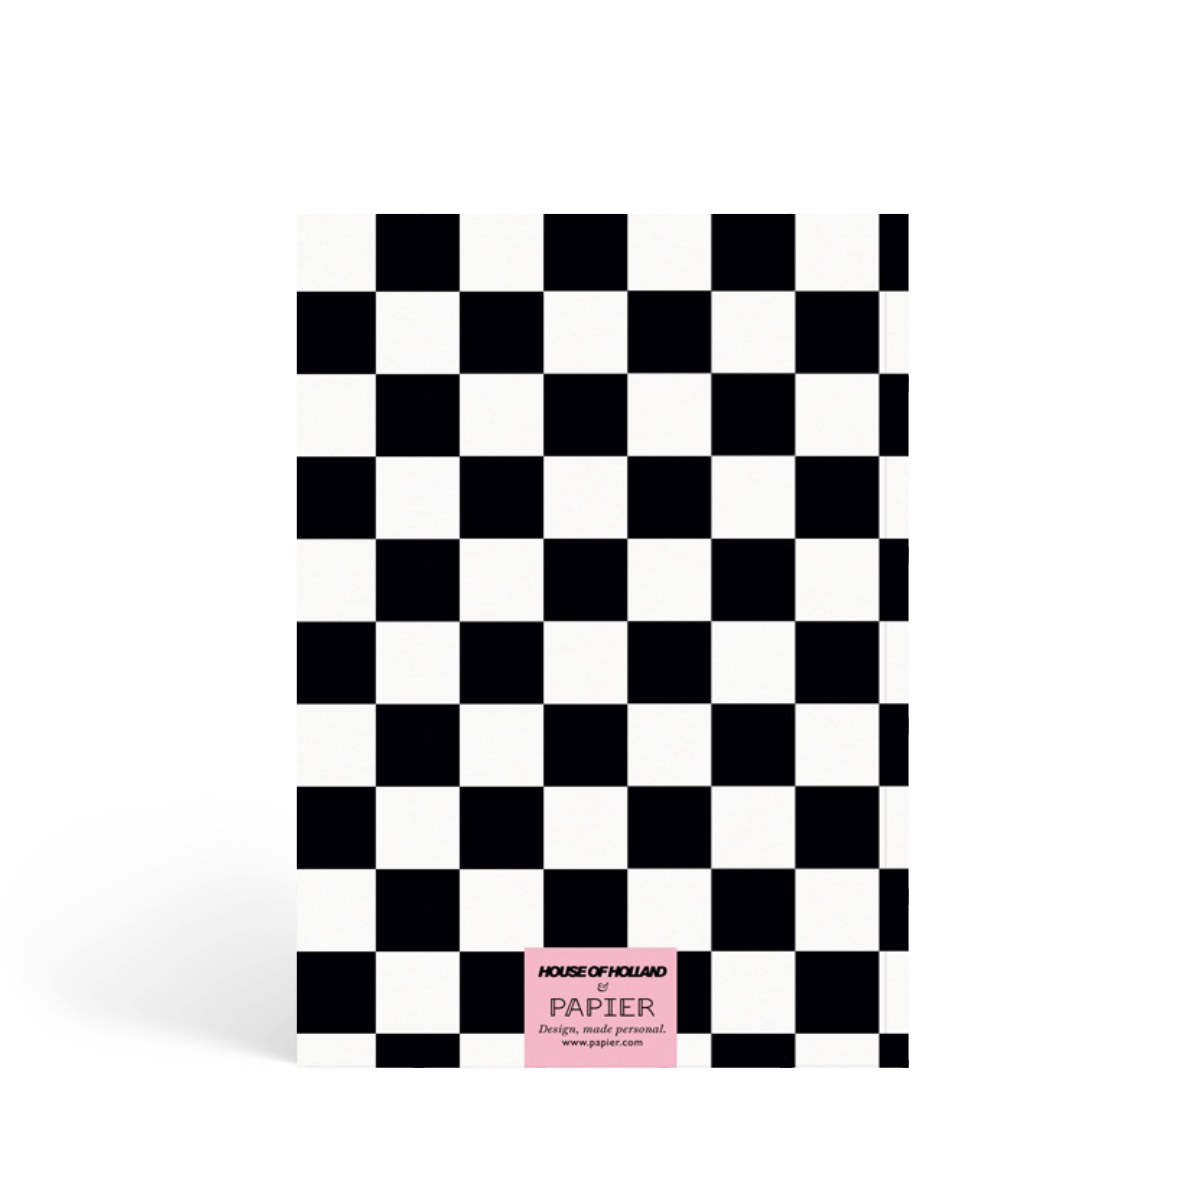 Https%3a%2f%2fwww.papier.com%2fproduct image%2f39373%2f5%2fcheckerboard 9781 back 1532962629.png?ixlib=rb 1.1